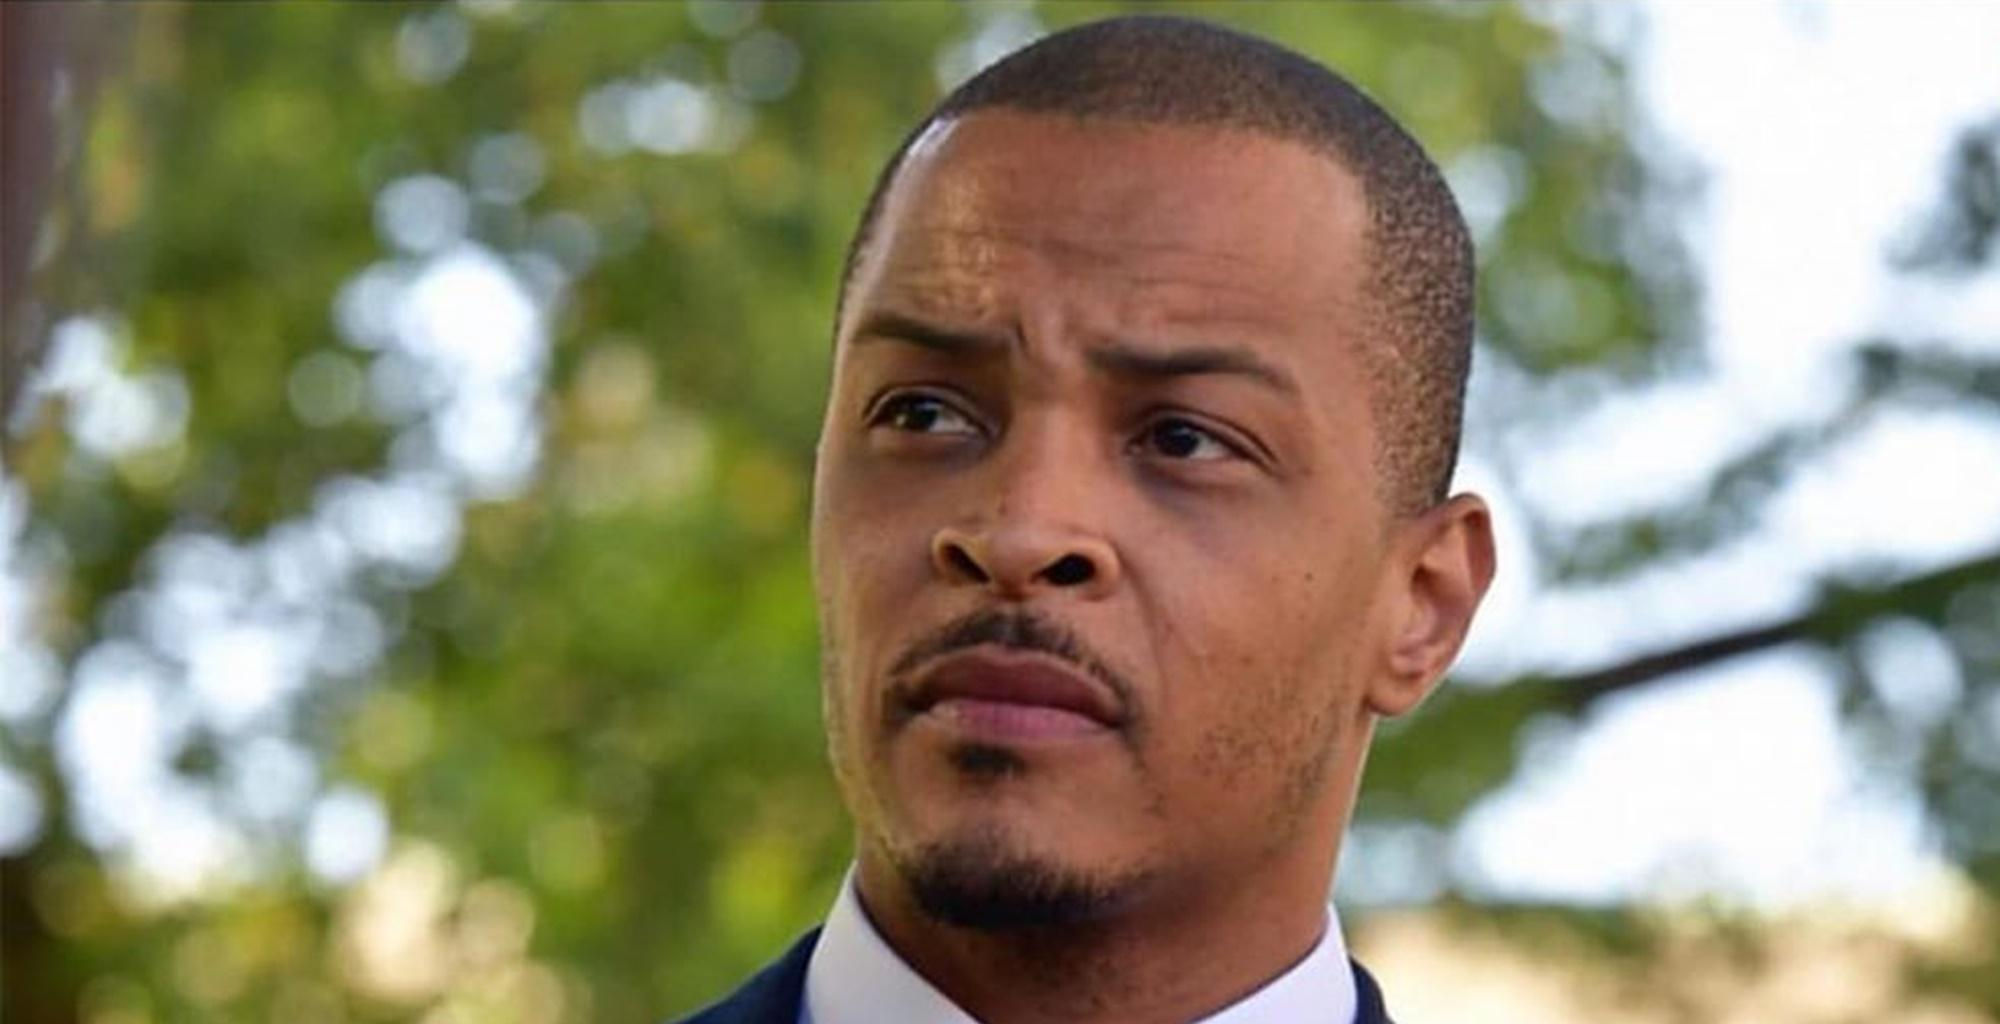 T.I. Explains How He Went From The 'Crack House To The White House' Using This Video After Posting A Tear-Jerking Conversation On Late Sister Precious Harris' Birthday